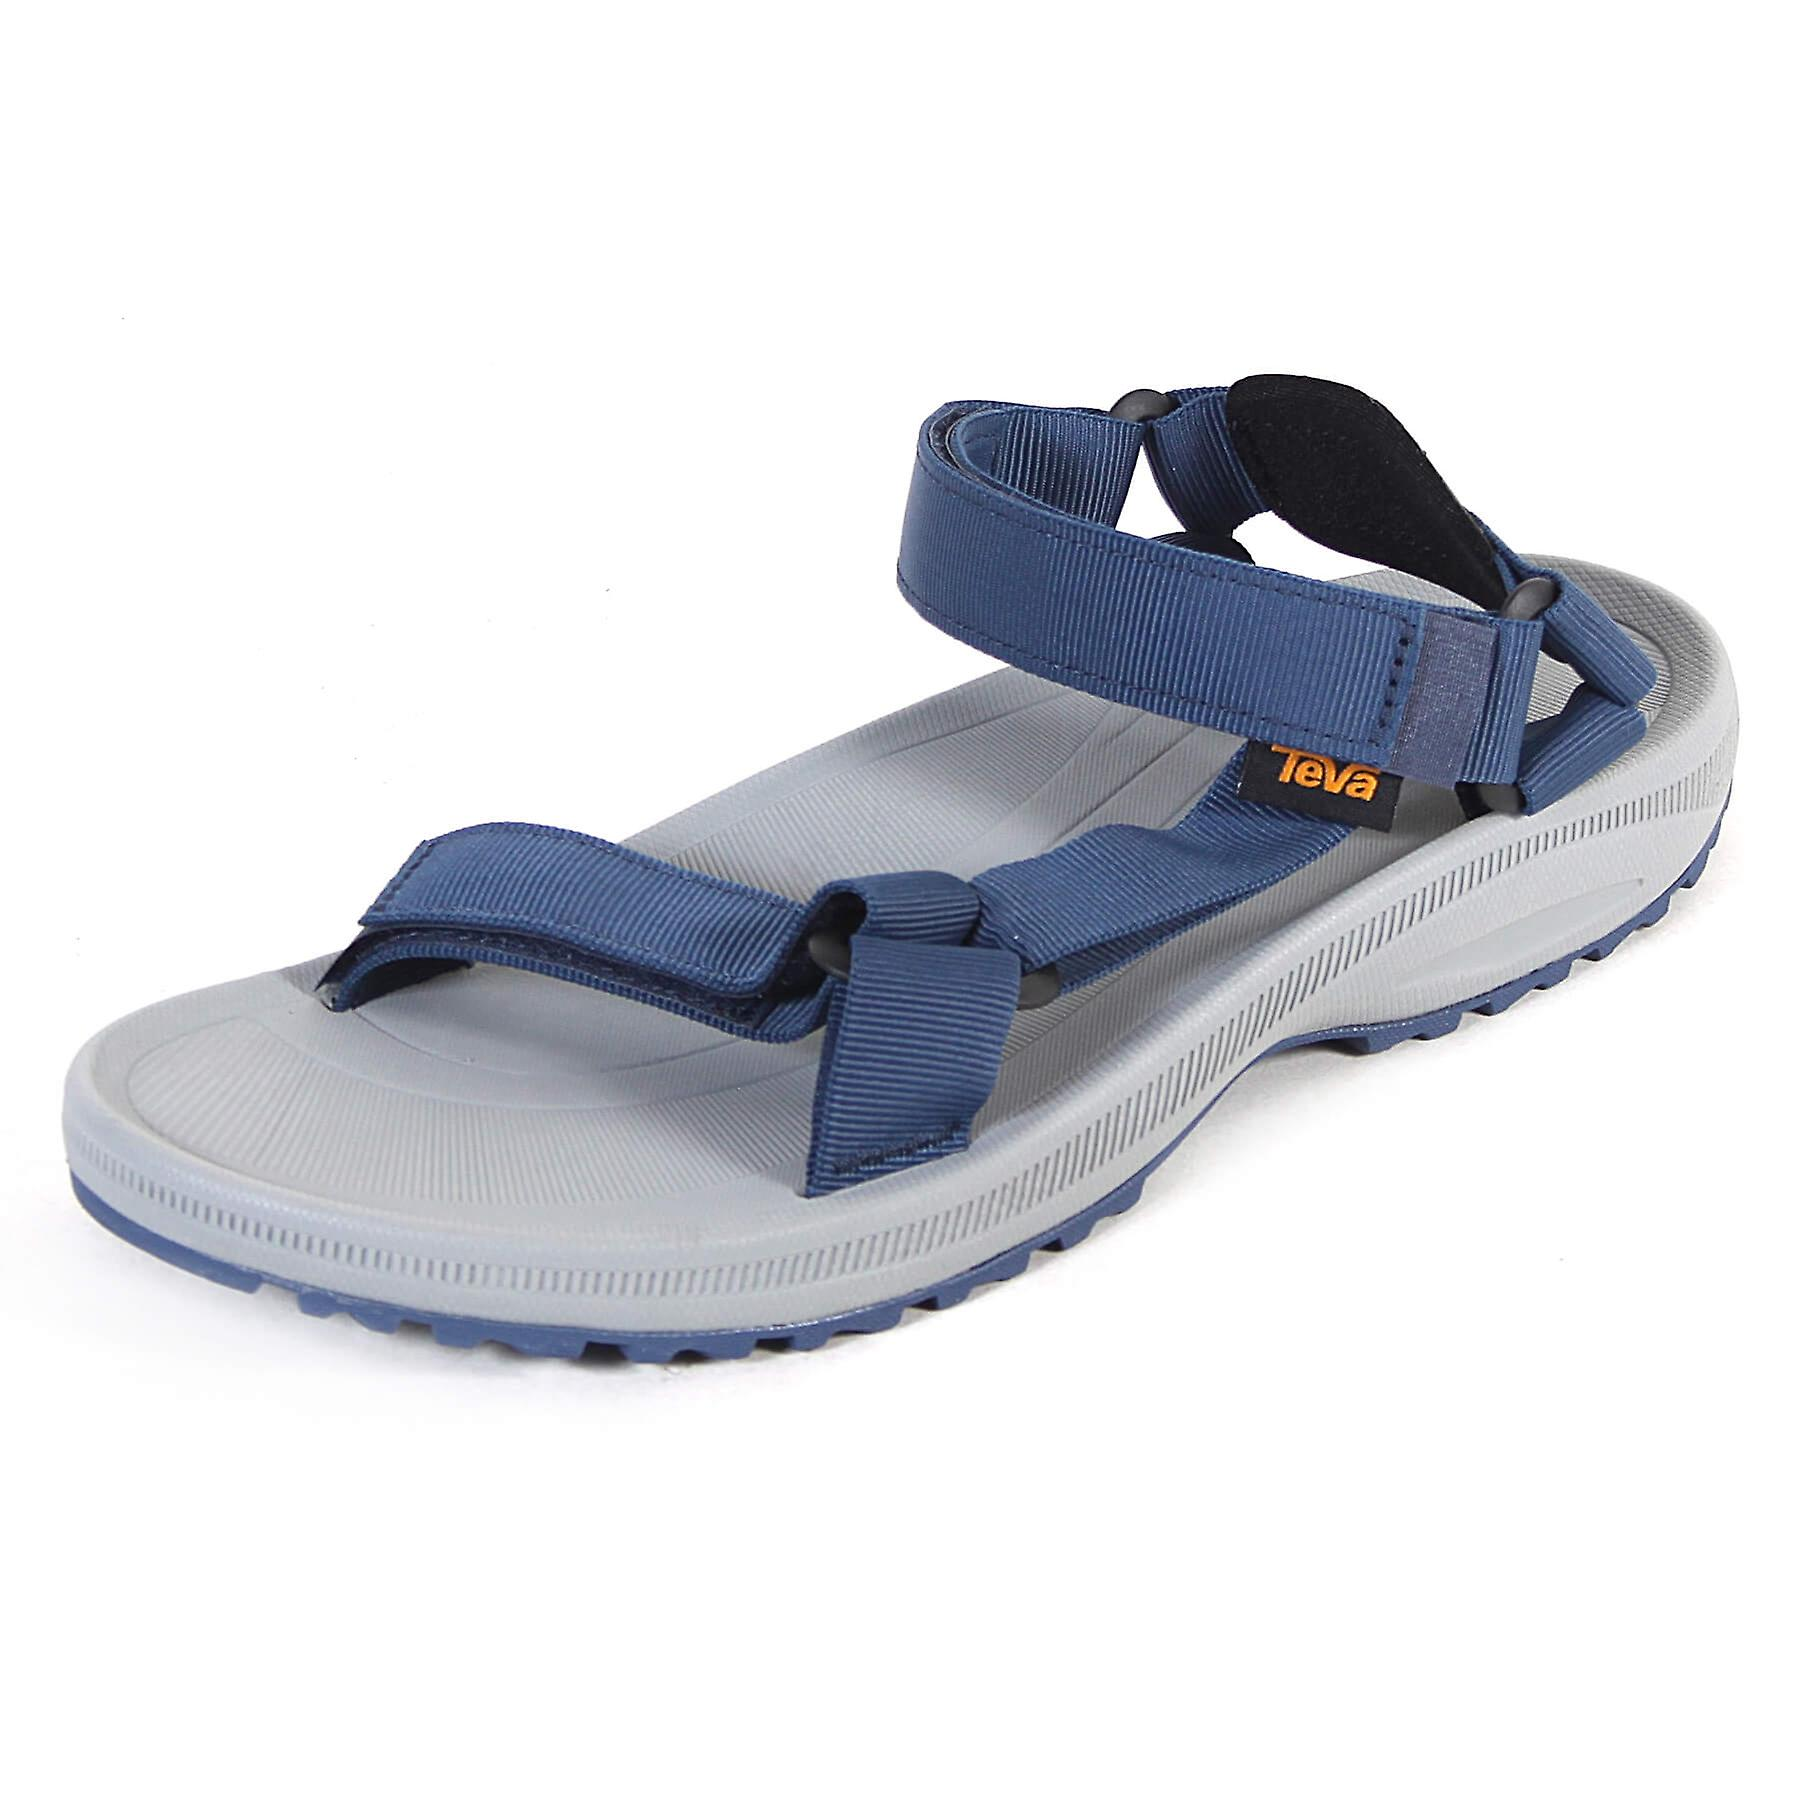 92d42cfa838a Teva Men s Winsted Solid Polyester Open Toe Sandal Navy   Grey